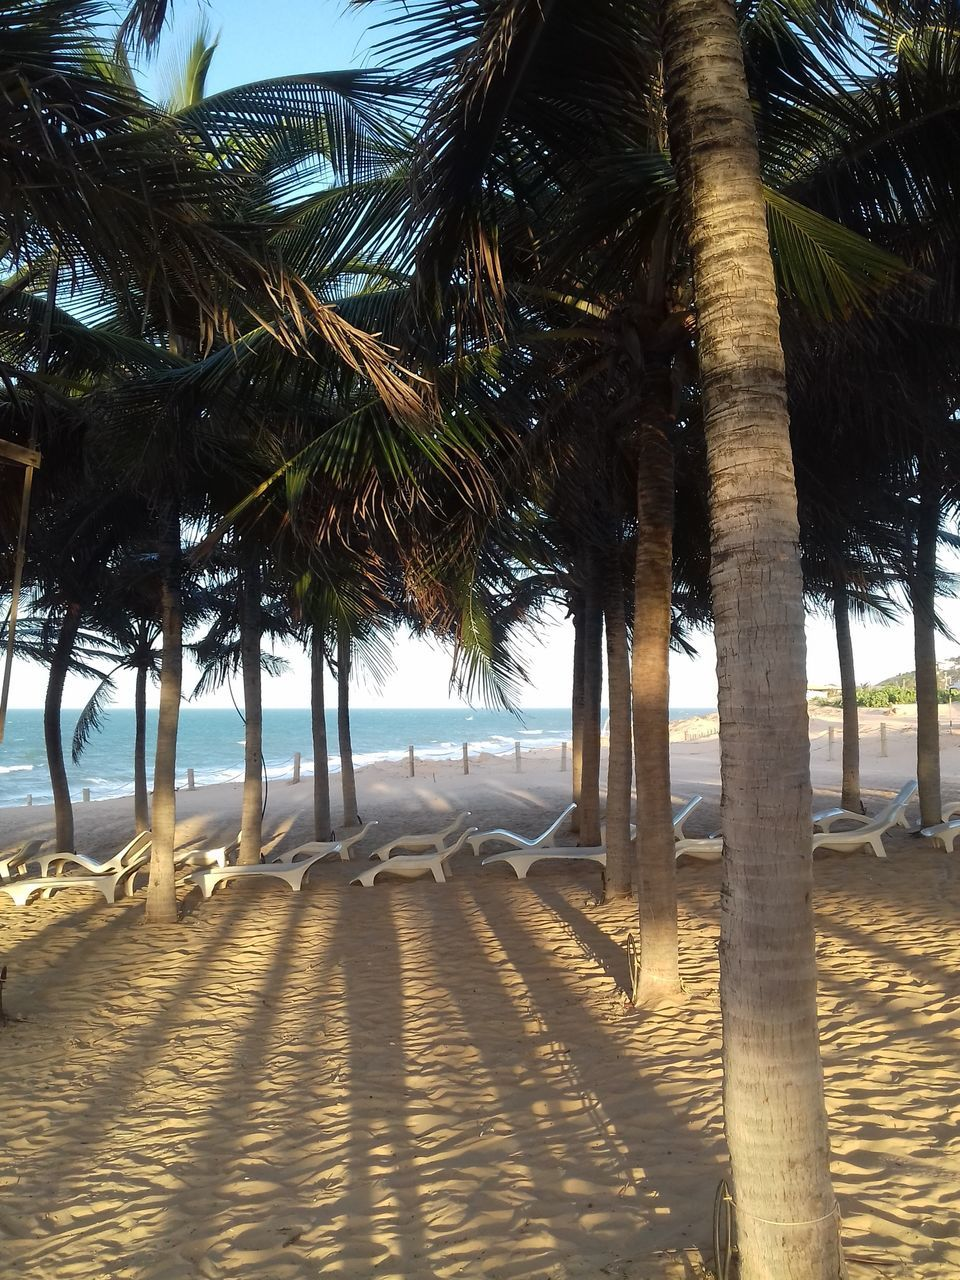 palm tree, tree, beach, sea, day, sand, tree trunk, nature, outdoors, no people, scenics, sky, water, beauty in nature